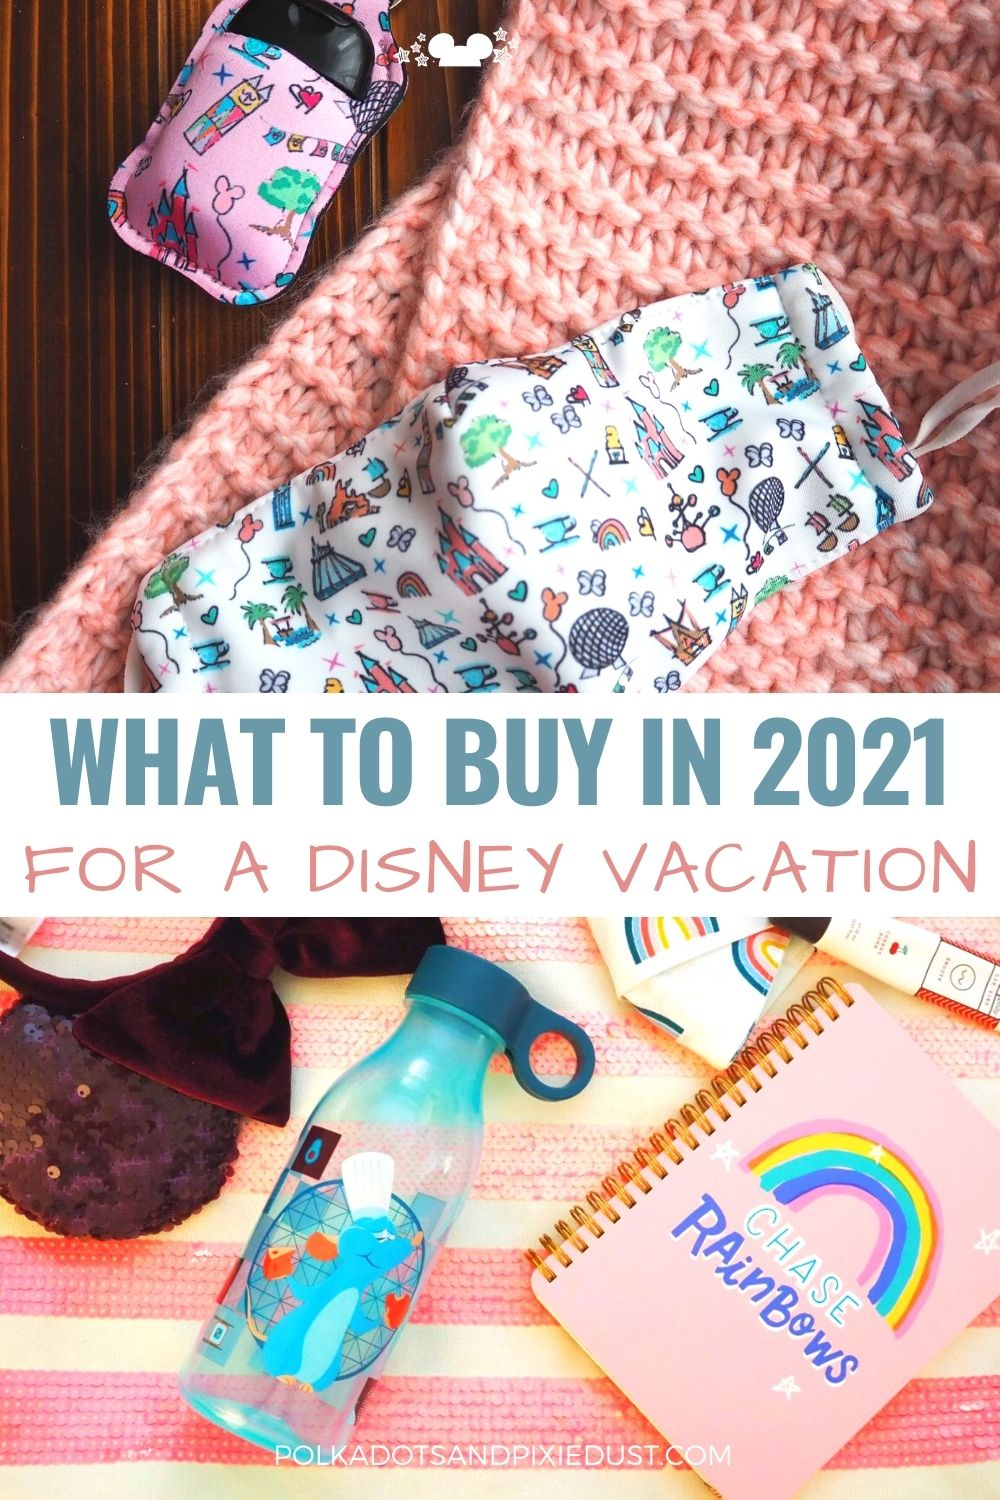 Everything you should add to your Disney Shopping list BEFORE you take your vacation. Whether you want to Save Money or Be Extra Safe, here's everything you need to get ahead of time, especially in 2021! #polkadotpixies #disneytips